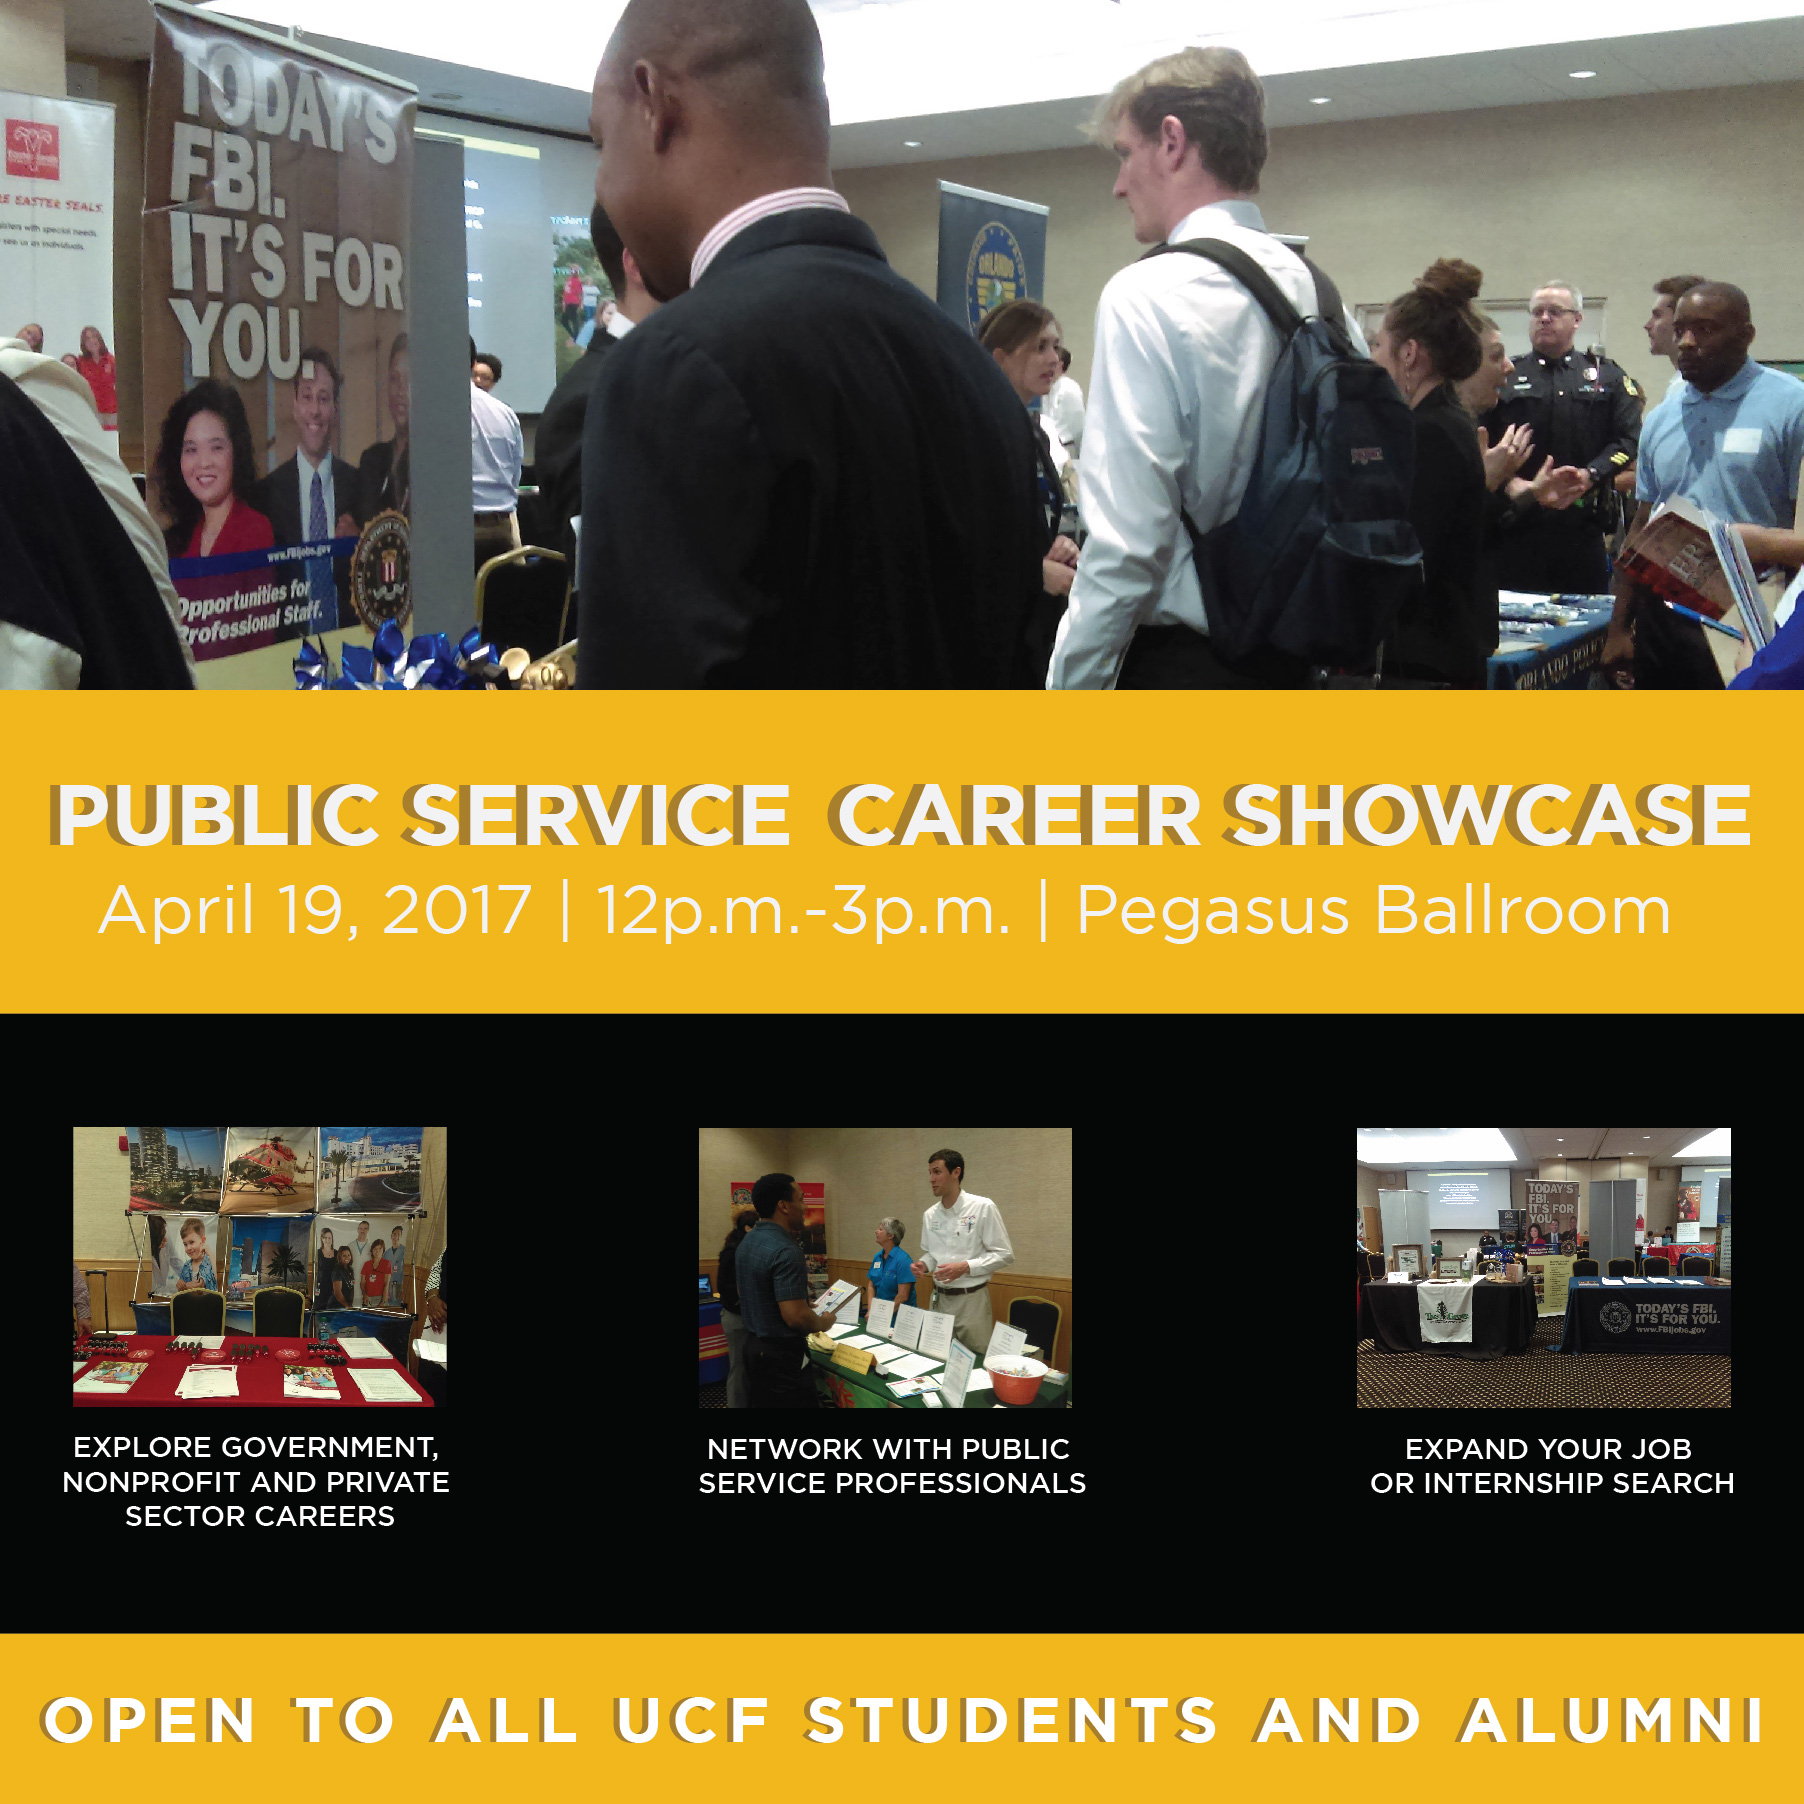 ucf career services resume critique ucf career services sample